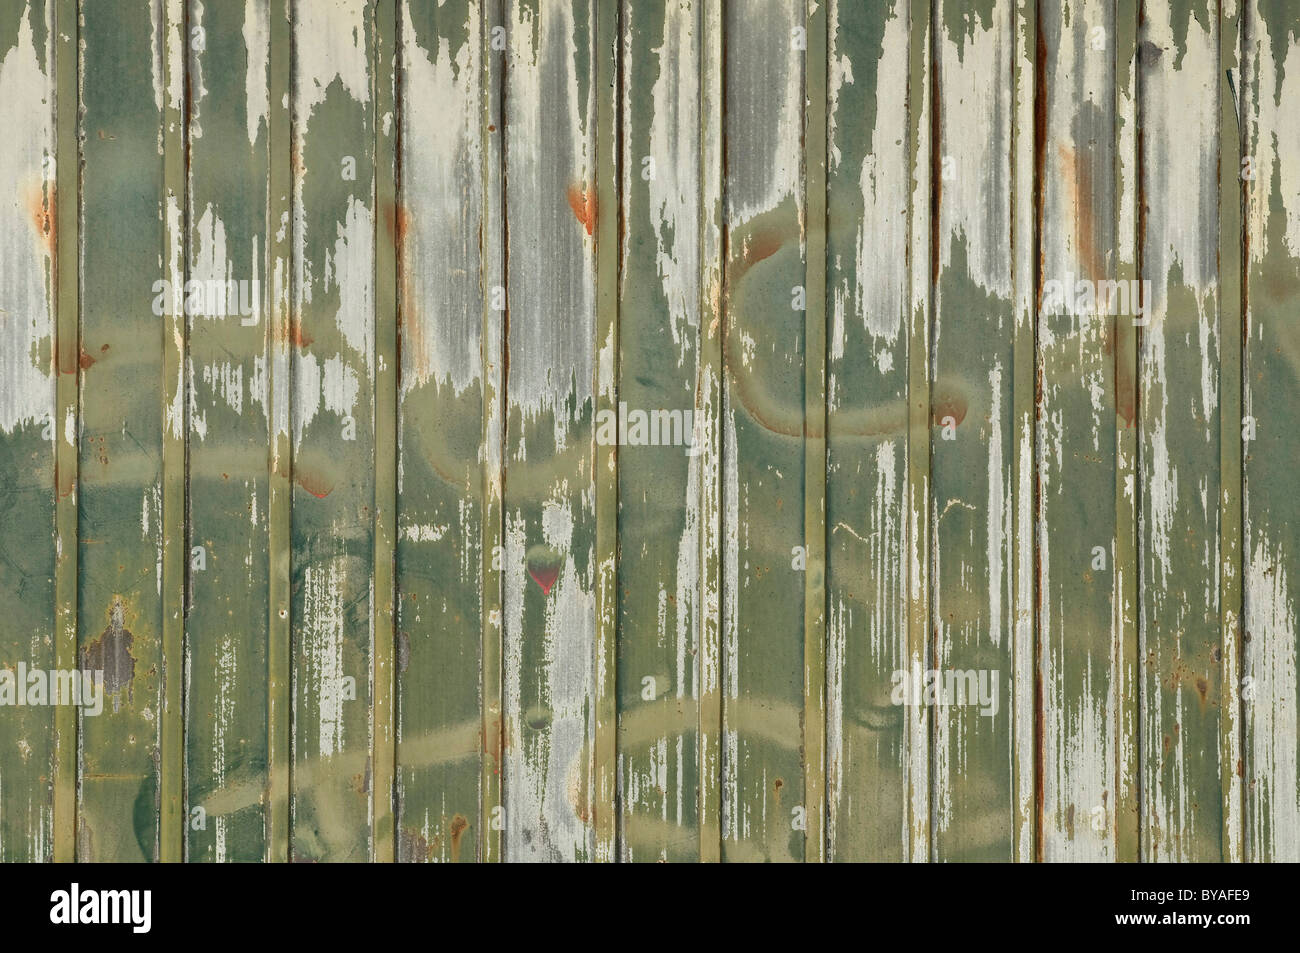 Smudgy painting covering graffiti - Stock Image